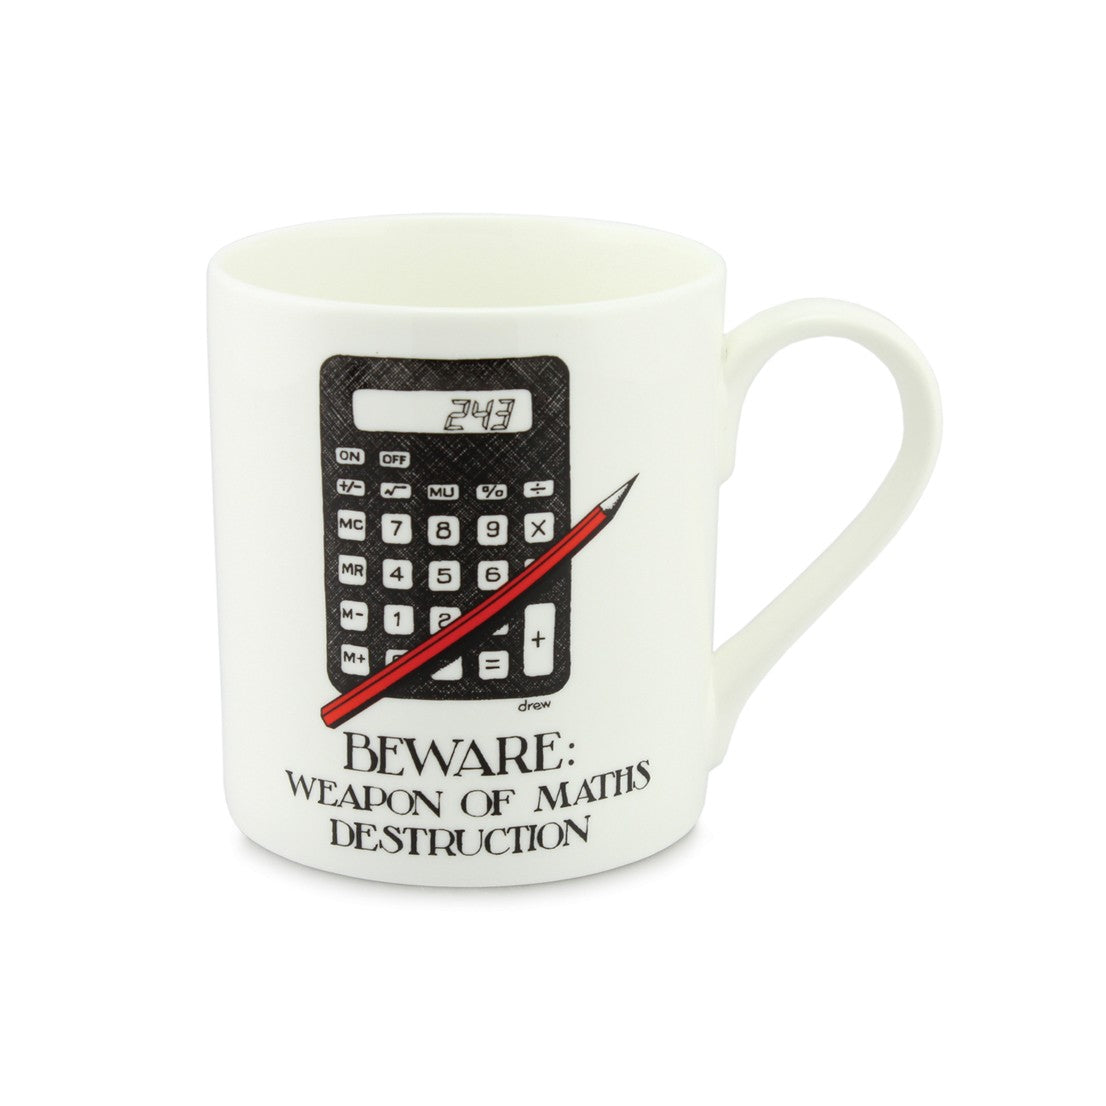 Weapon of Maths Destruction China Mug